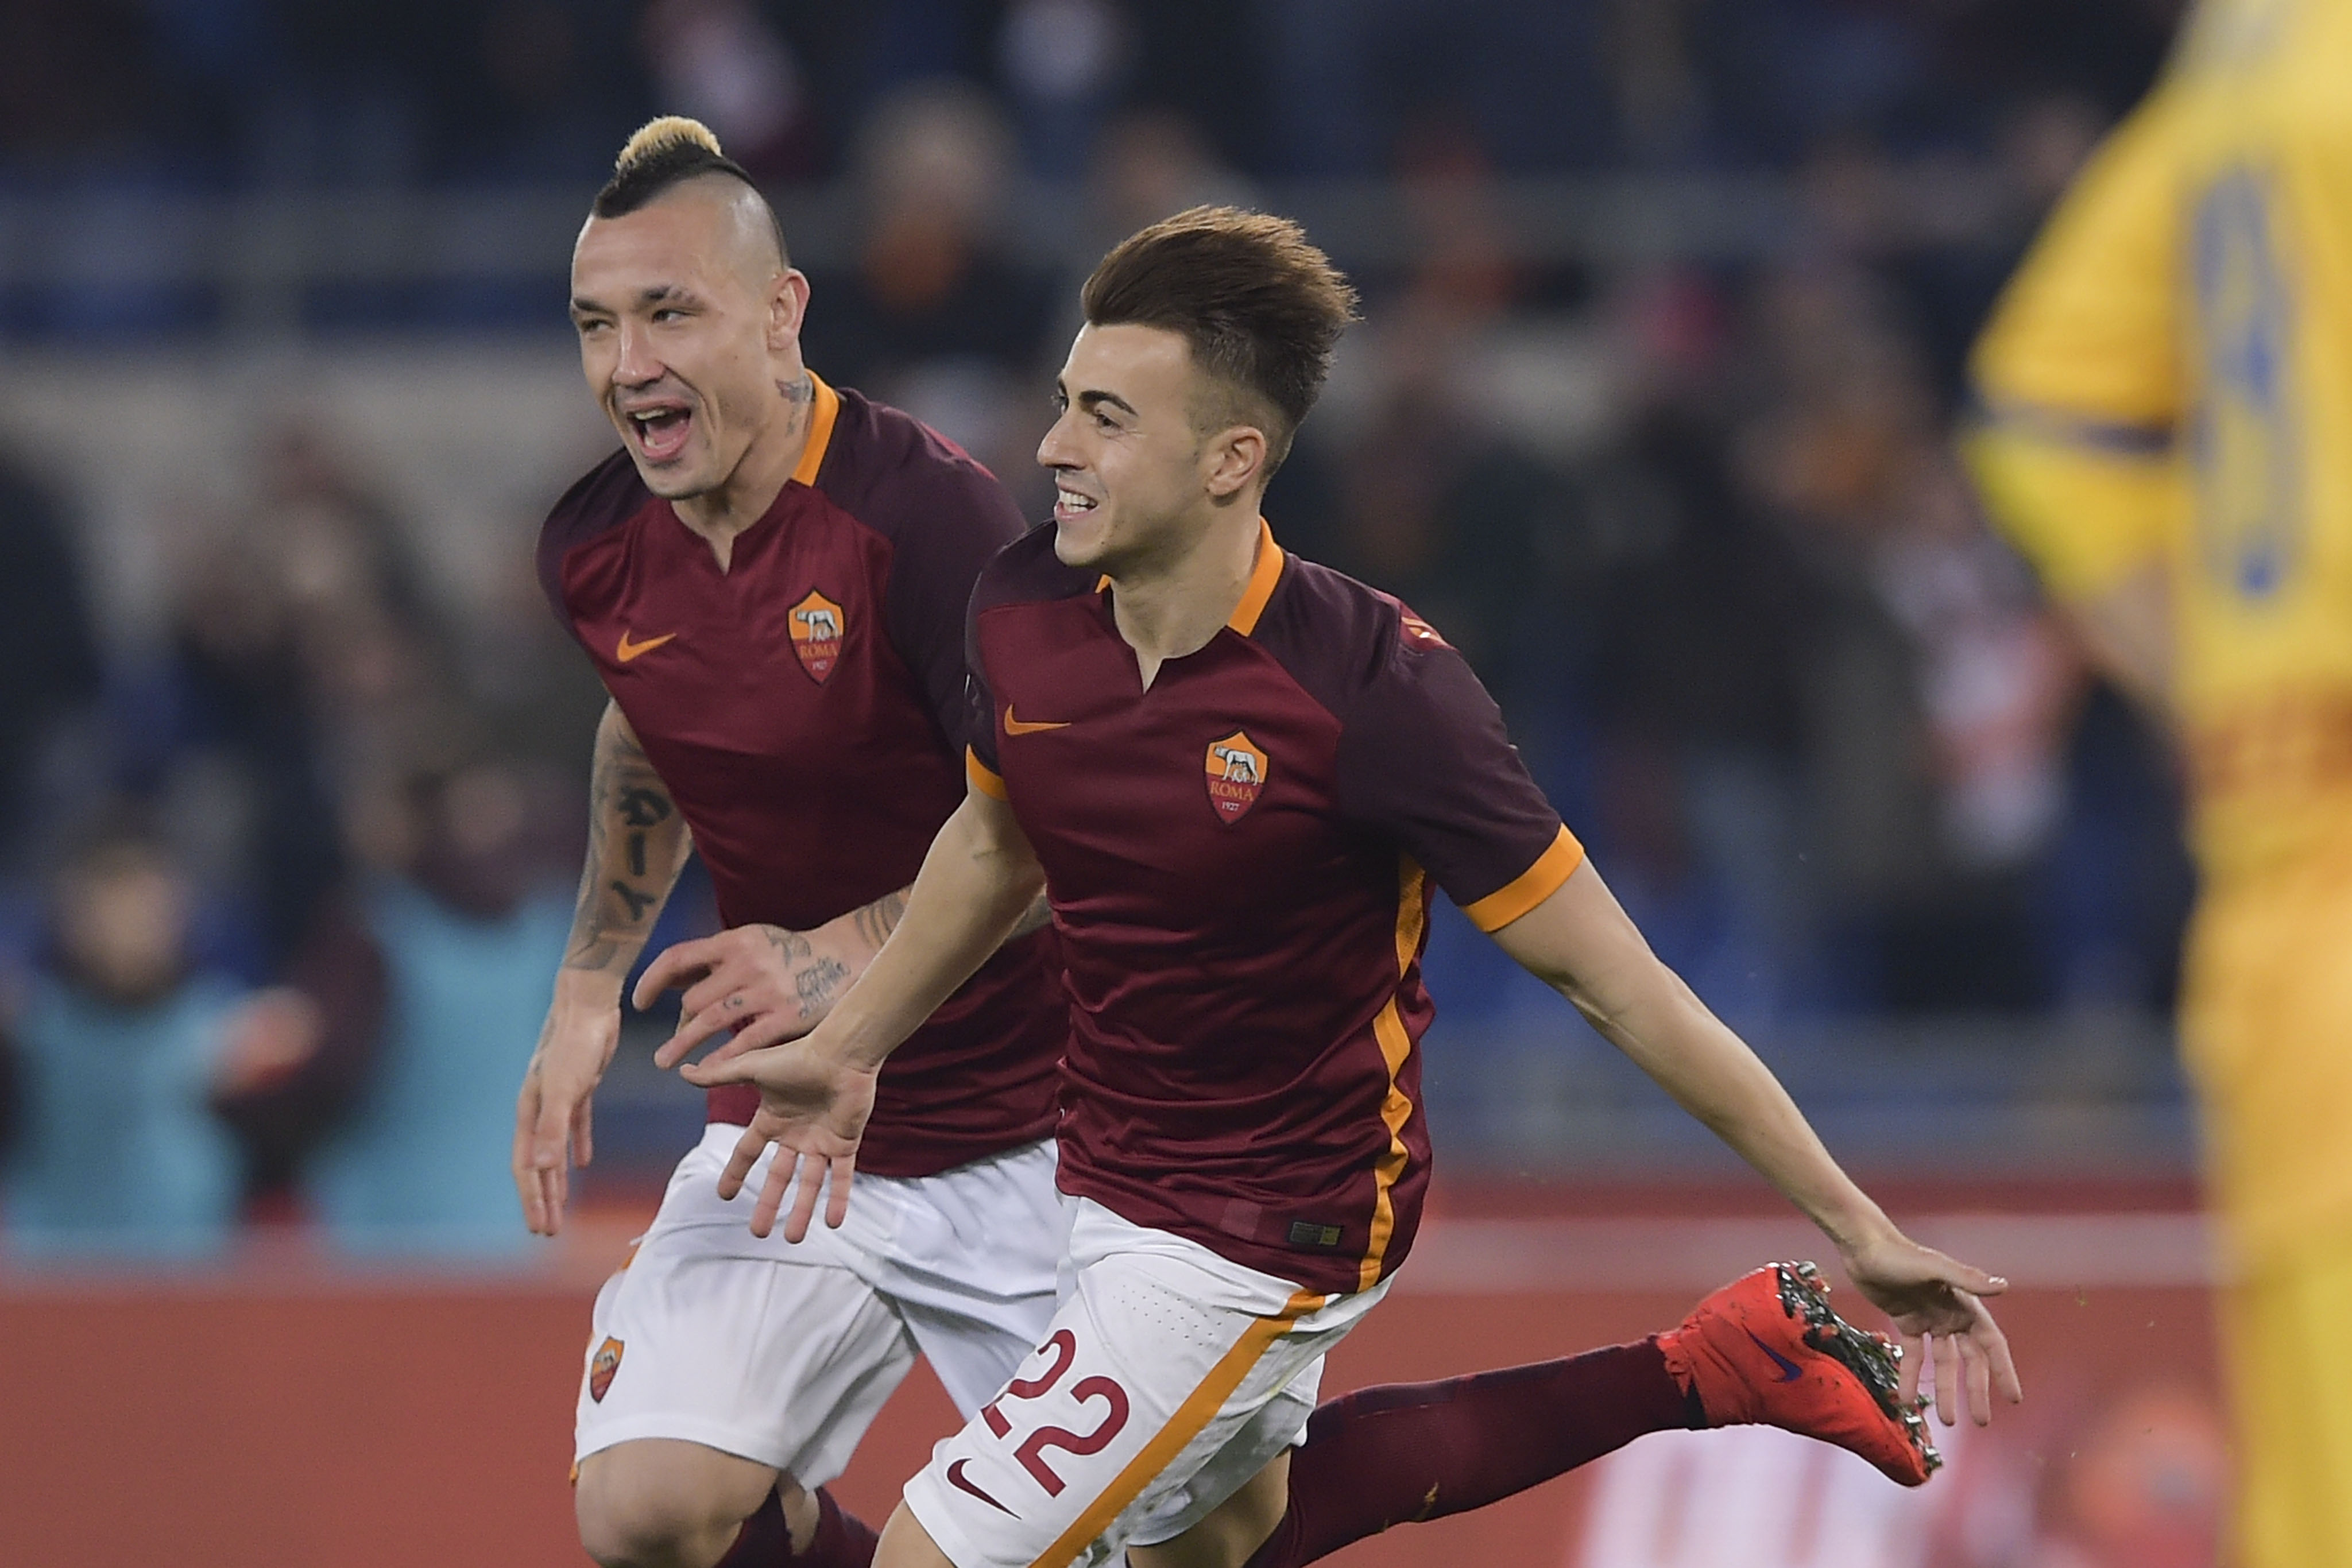 ROME, ITALY - JANUARY 30:  AS Roma player Stephan El Shaarawy and Radja Nainggolan celebrate the goal during the Serie A match between AS Roma and Frosinone Calcio at Stadio Olimpico on January 30, 2016 in Rome, Italy.  (Photo by Luciano Rossi/AS Roma via Getty Images)